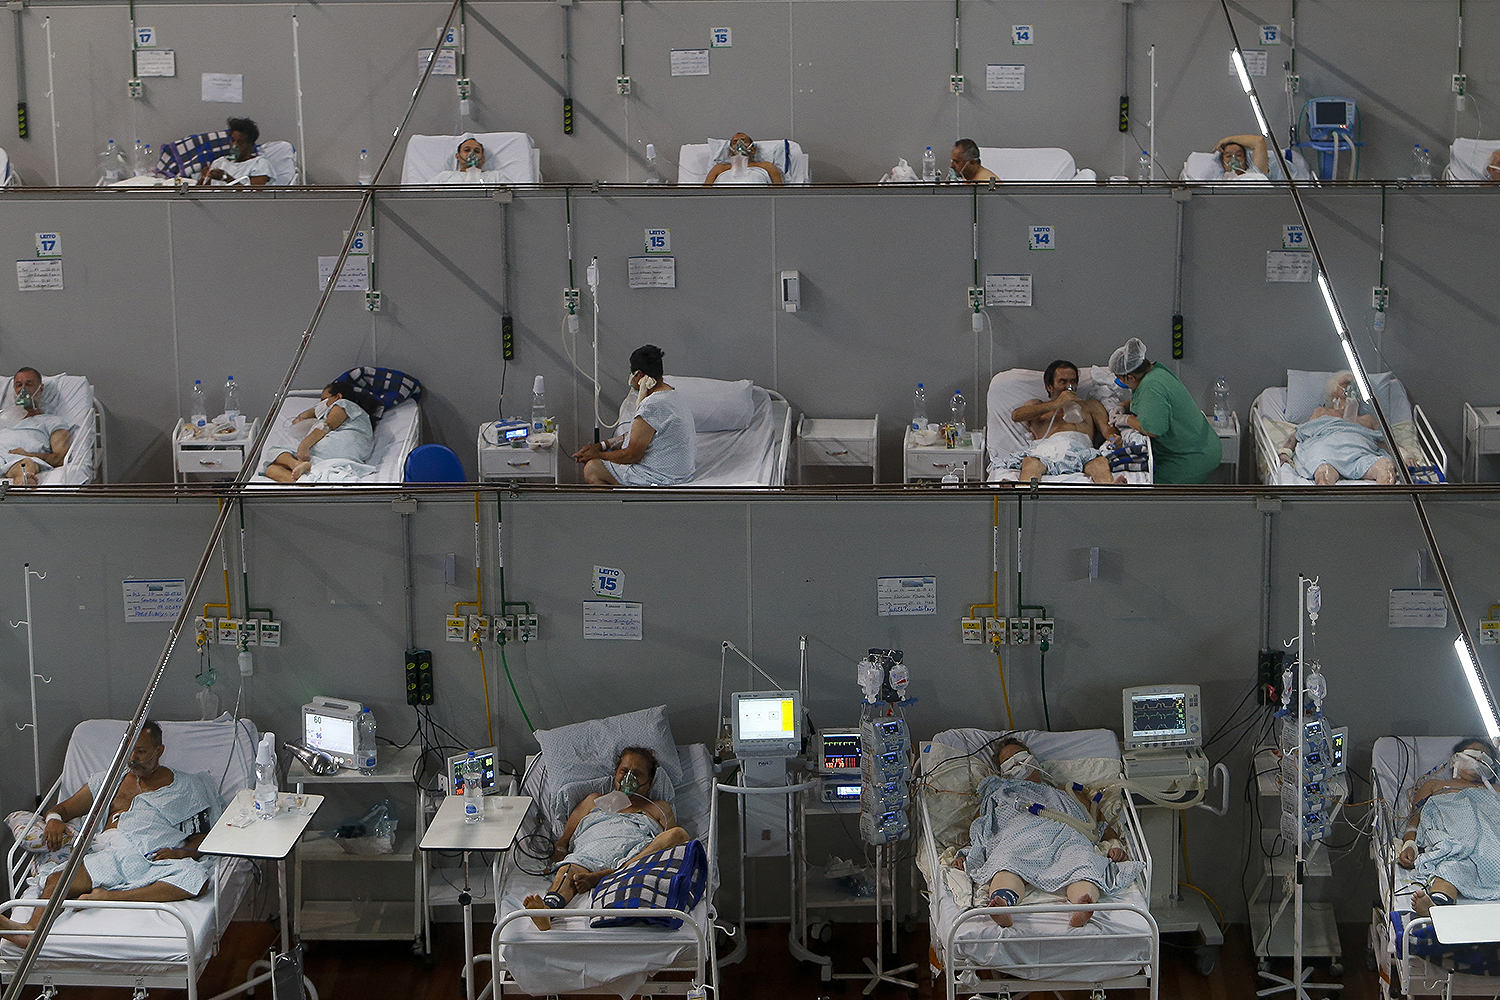 Brazilian coronavirus patients are set up in a field hospital at a sports gym in Santo Andre, Sao Paulo, on March 26. MIGUEL SCHINCARIOL/AFP via Getty Images